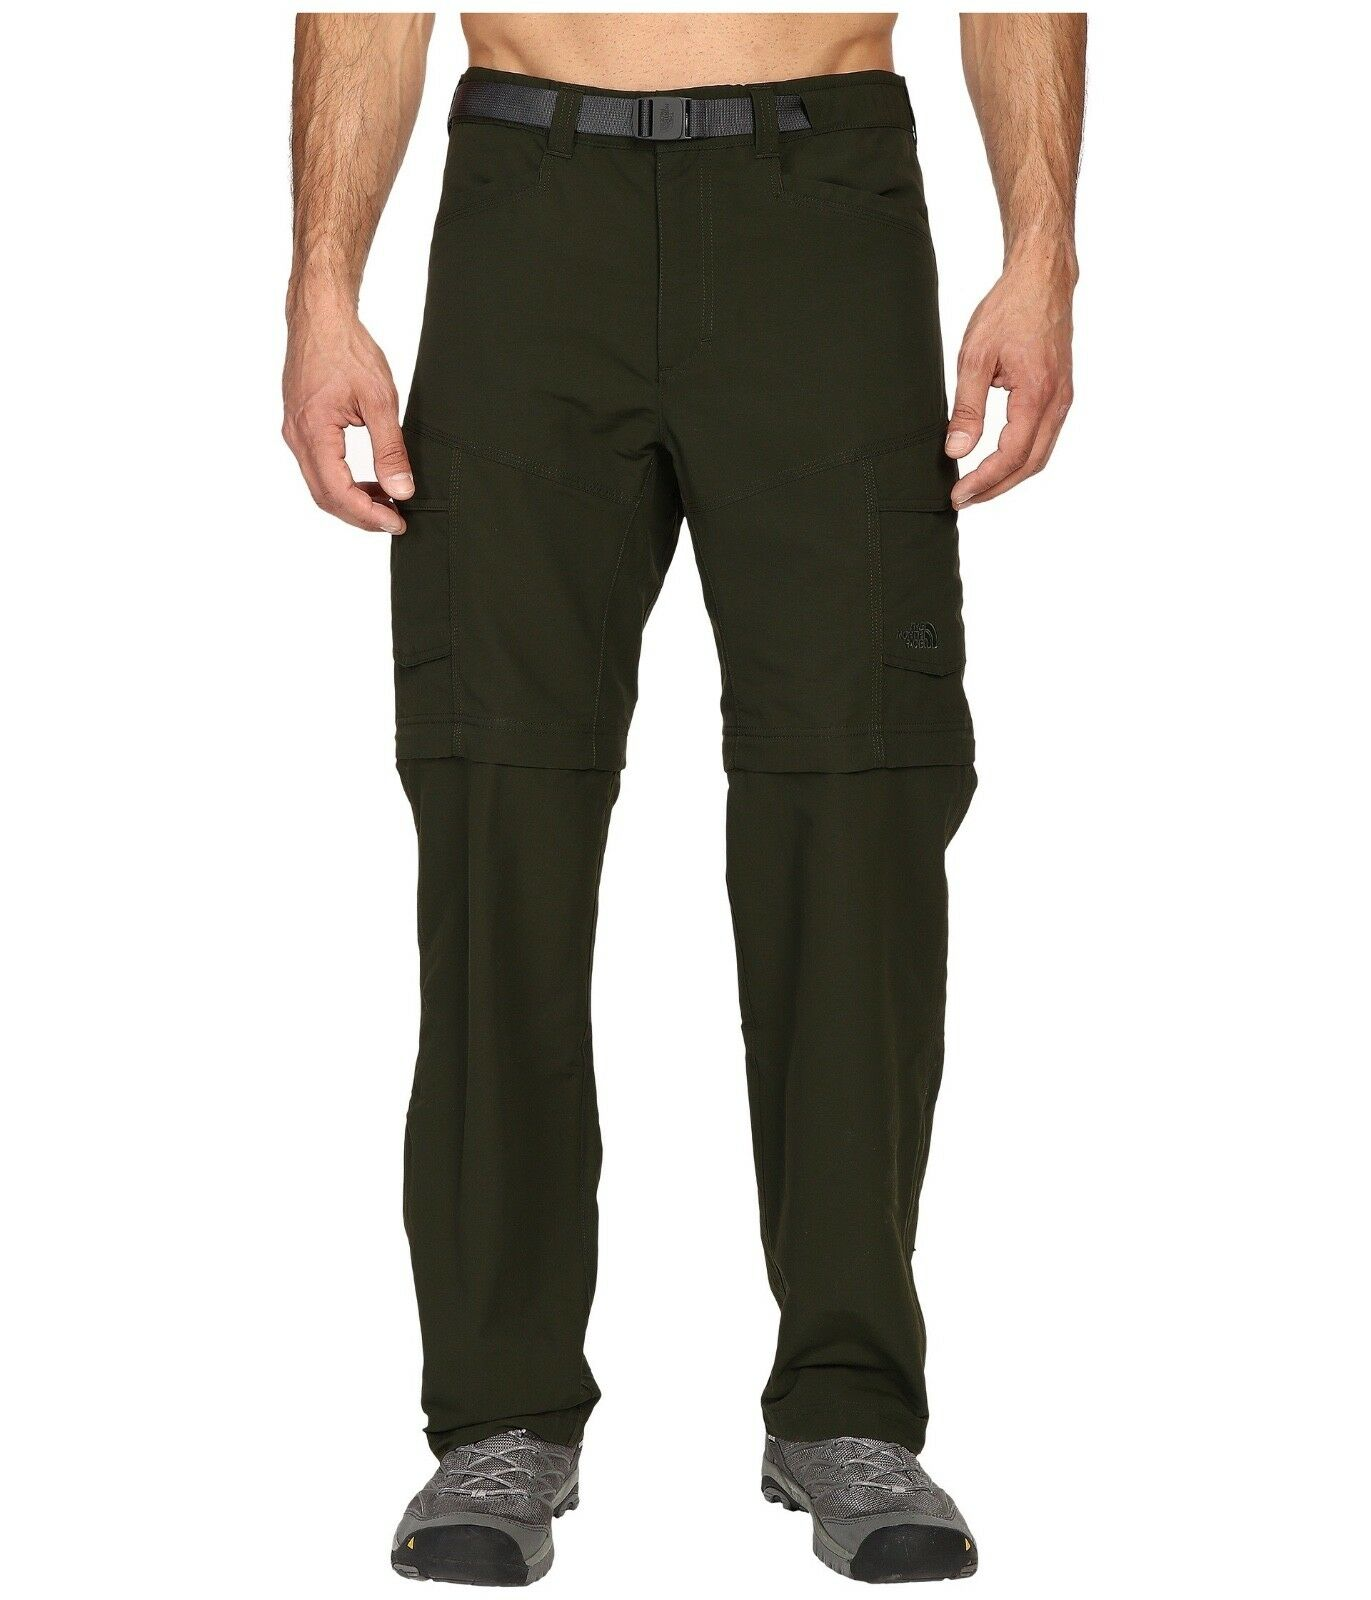 The north face paramount peak ll congreenible pant rosin green forest M-XXL bnwt